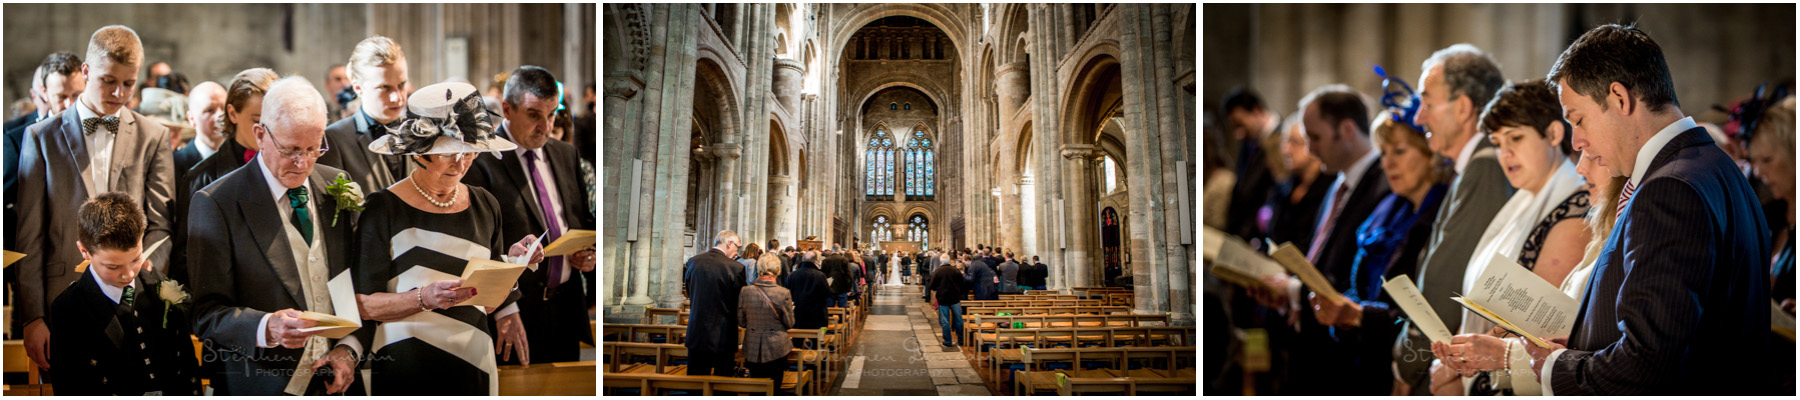 Romsey Abbey wedding photographer guests during service